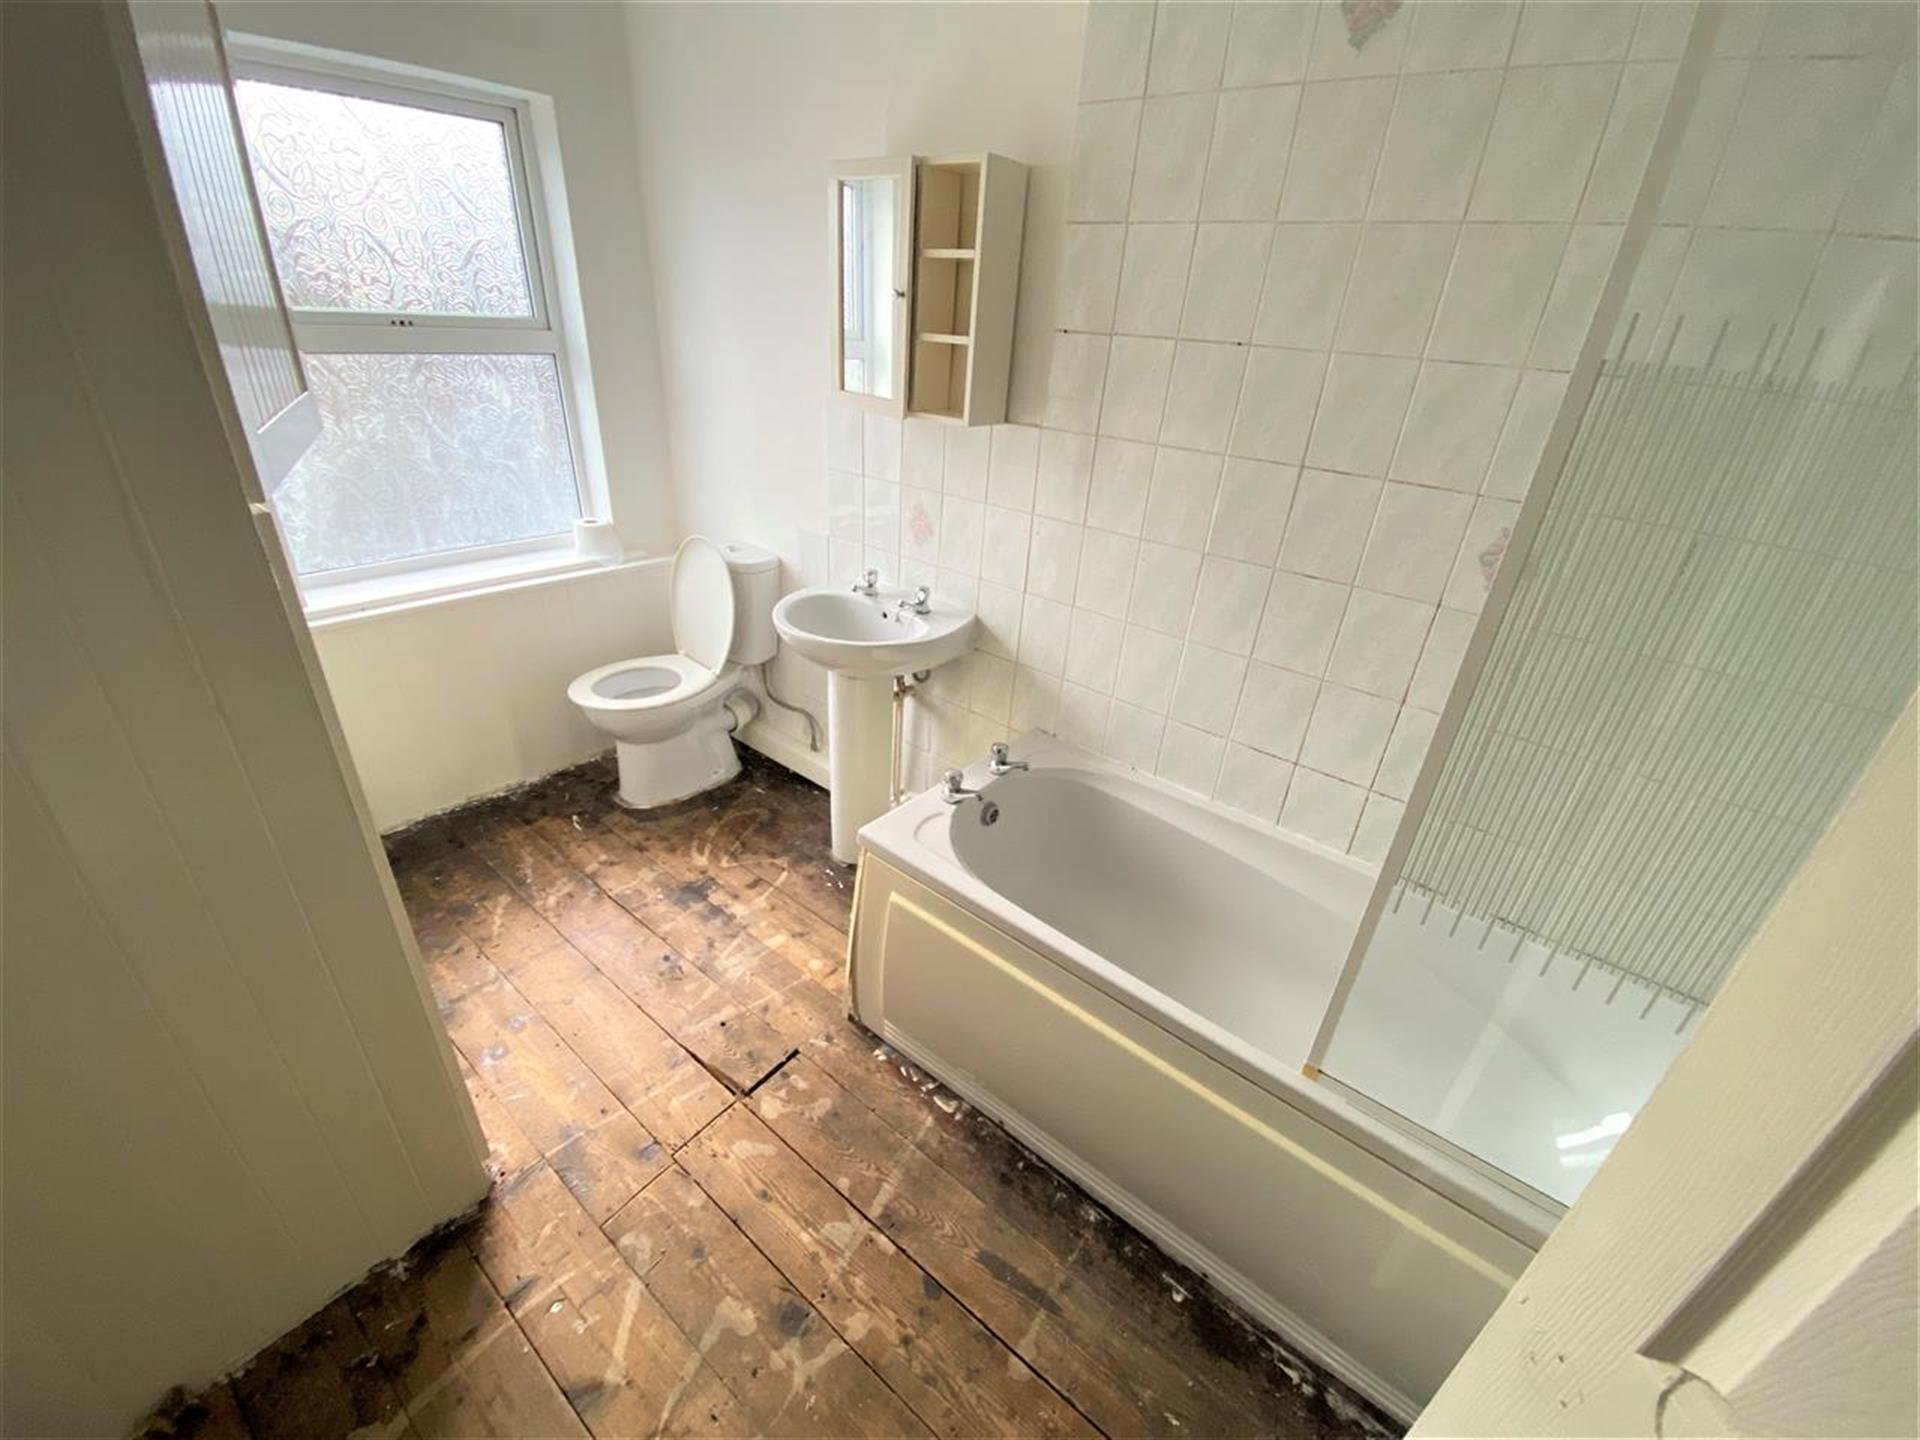 2 Bedroom End Terraced House For Sale - Bathroom